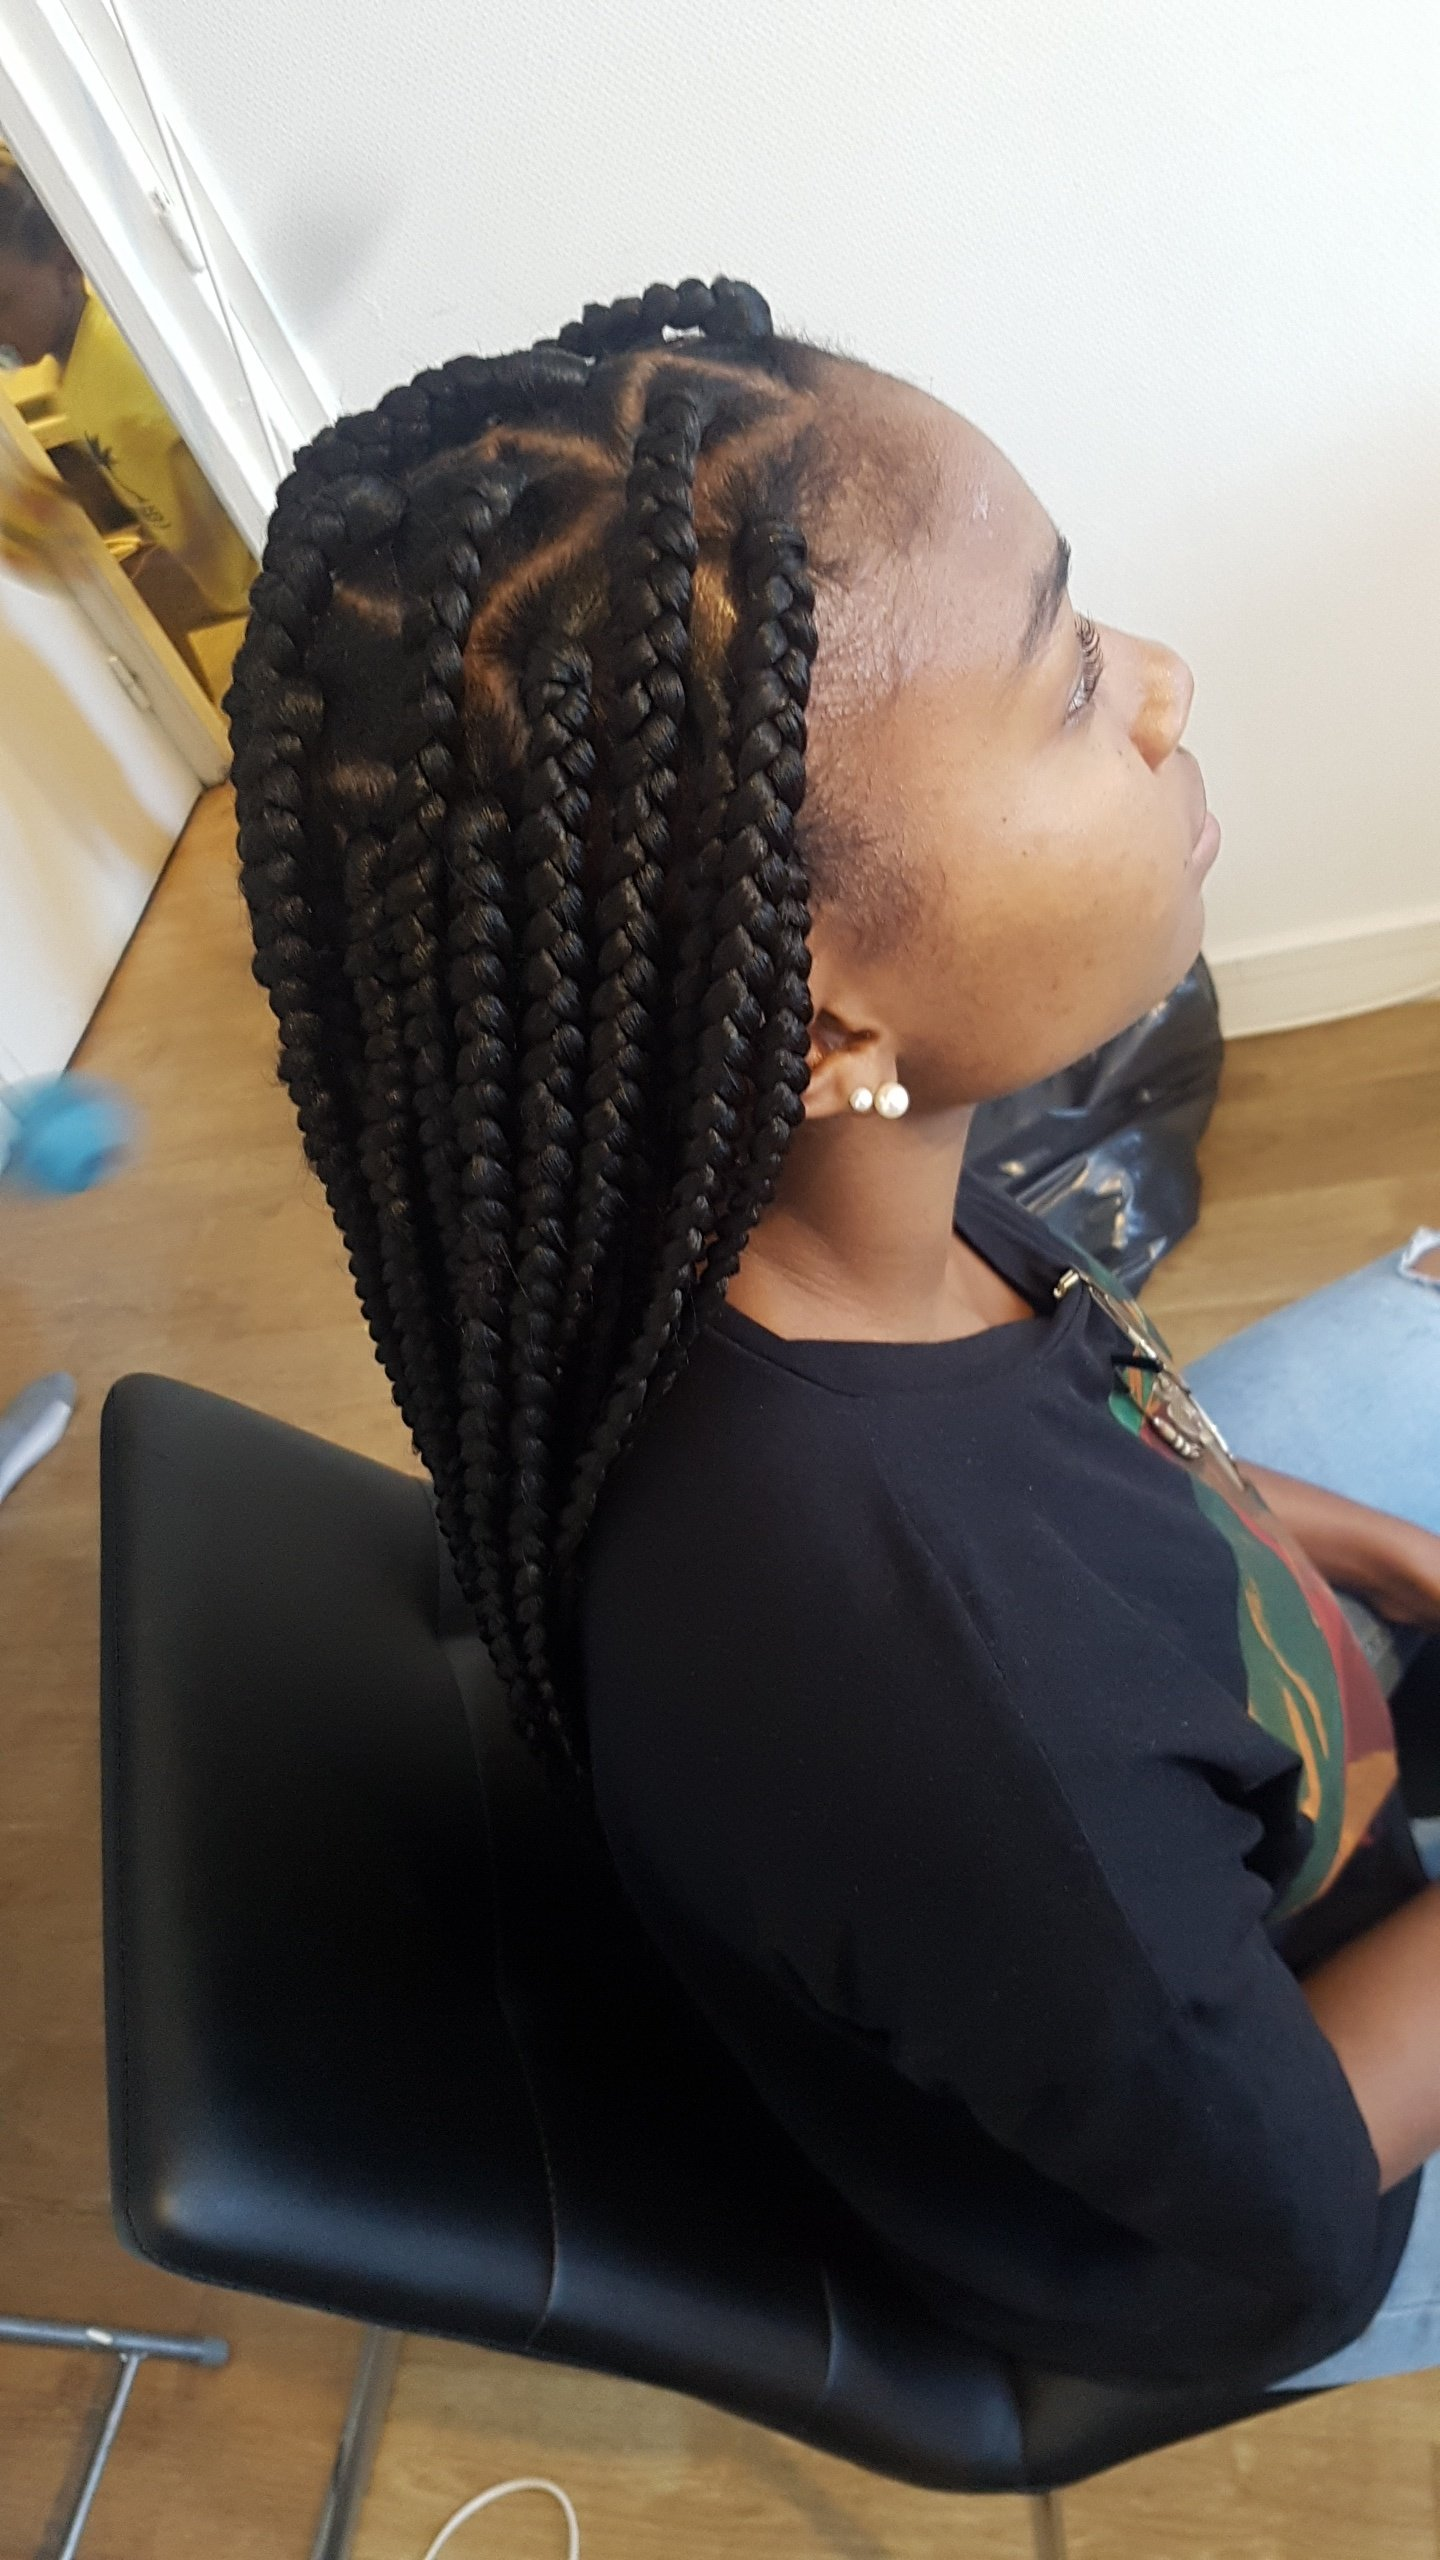 salon de coiffure afro tresse tresses box braids crochet braids vanilles tissages paris 75 77 78 91 92 93 94 95 VYQEPVGS